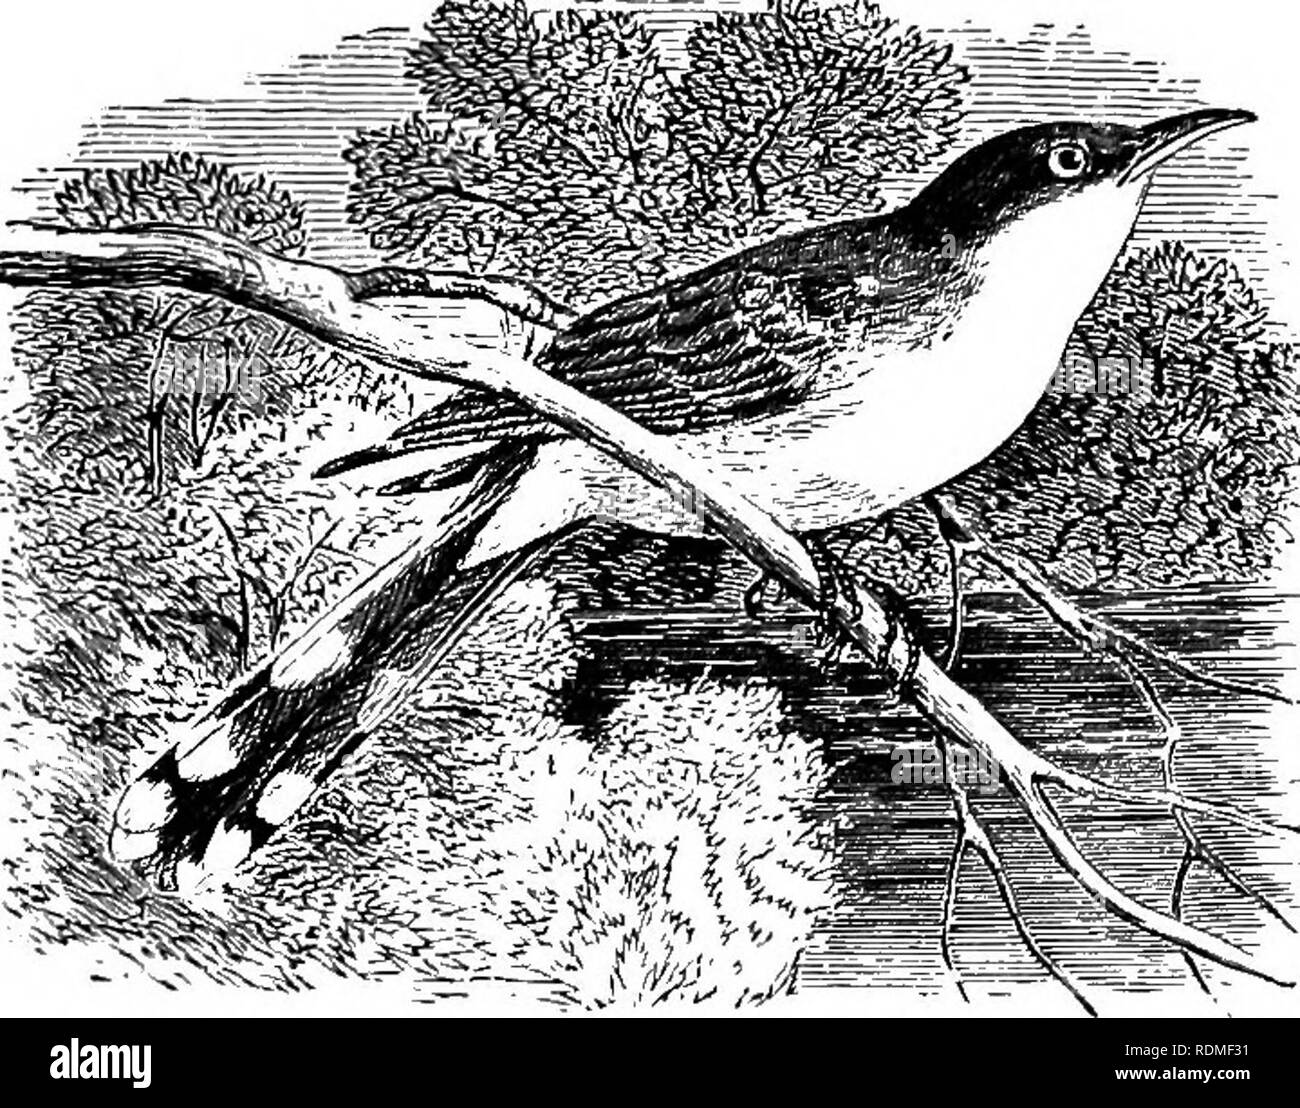 . The birds of Illinois and Wisconsin. Birds; Birds. Jan., 1909. Birds of Illinois and Wisconsin—Cory. 161 Family CUCULIDiE. Cuckoos. Feet, zygodactyle (two toes in front, two behind); first primary, about half as long as third; outer tail feathers, much shorter than middle ones.. Yellow-billed Cuckoo. Upper parts, brownish gray, with faint gloss of greenish; under mandible, mostly yellow; greater portion of primaries, rufous brown, tipped with grayish olive; under parts, dull white; outer tail feathers, black, tipped with white. Coccyzus americanus. Yellow-billed cuckoo. See No. 185. Upper pa - Stock Image